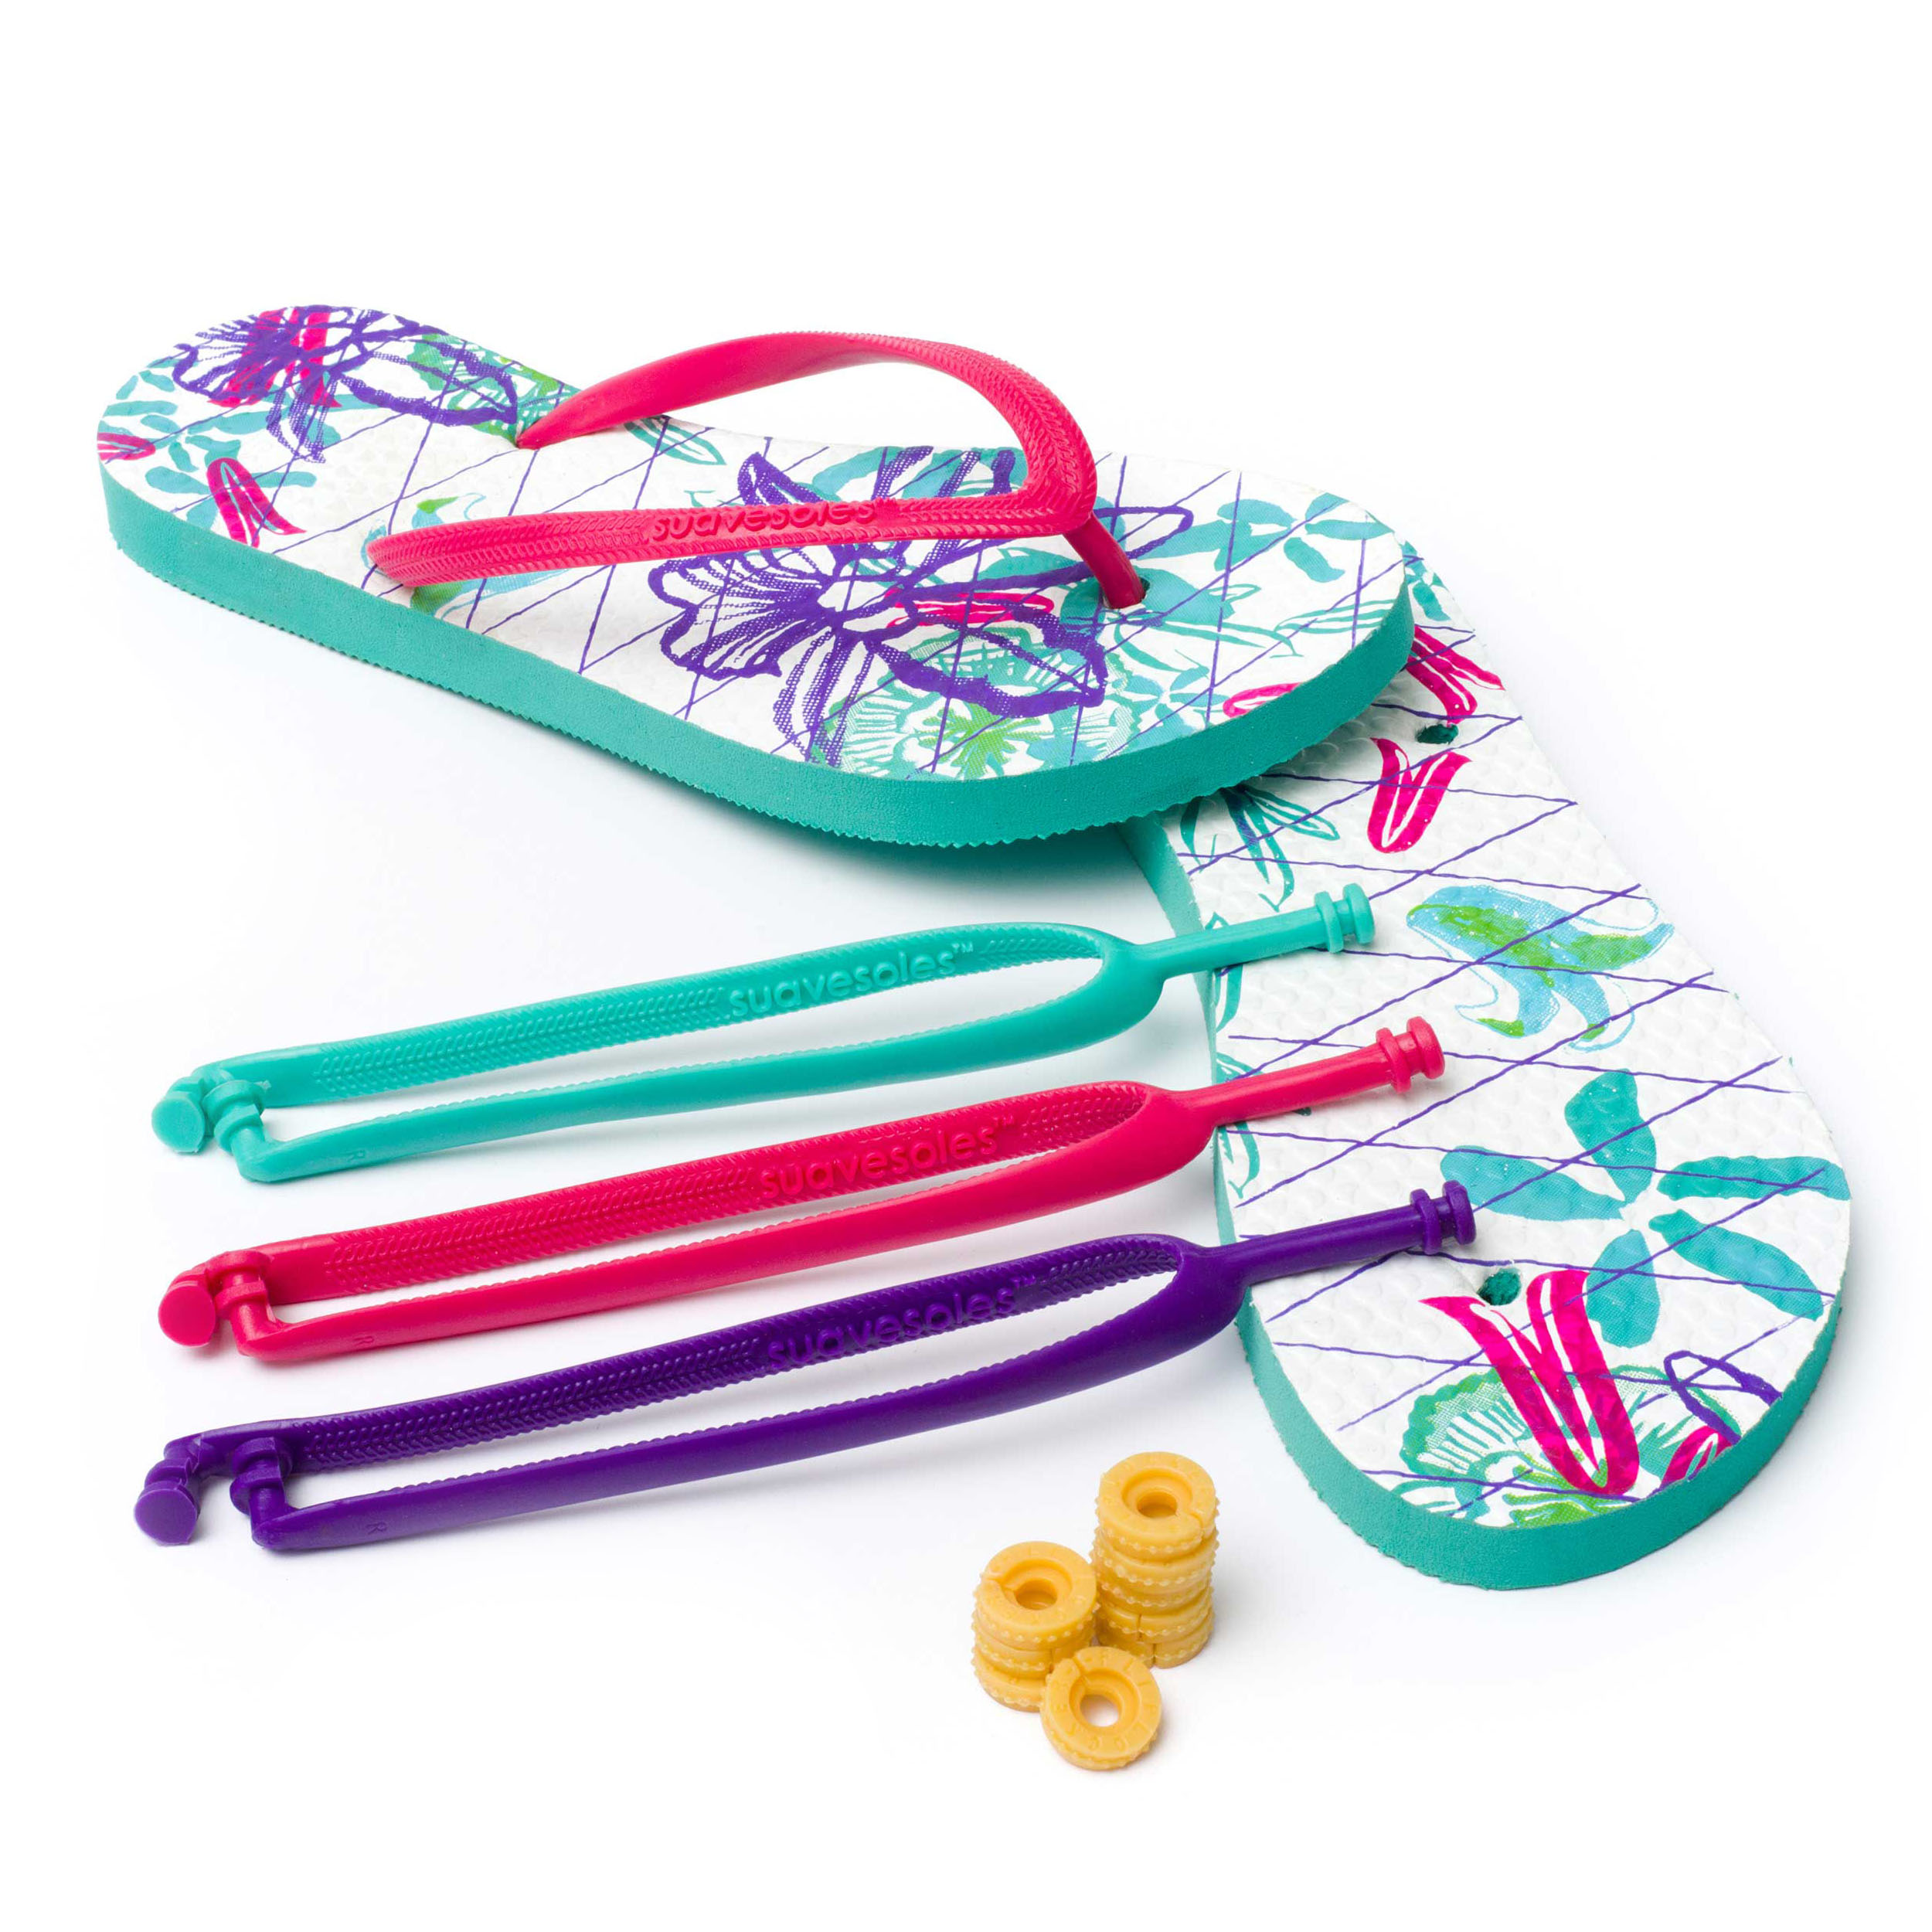 Promotion Suavesoles flip flops sandals sales promotion